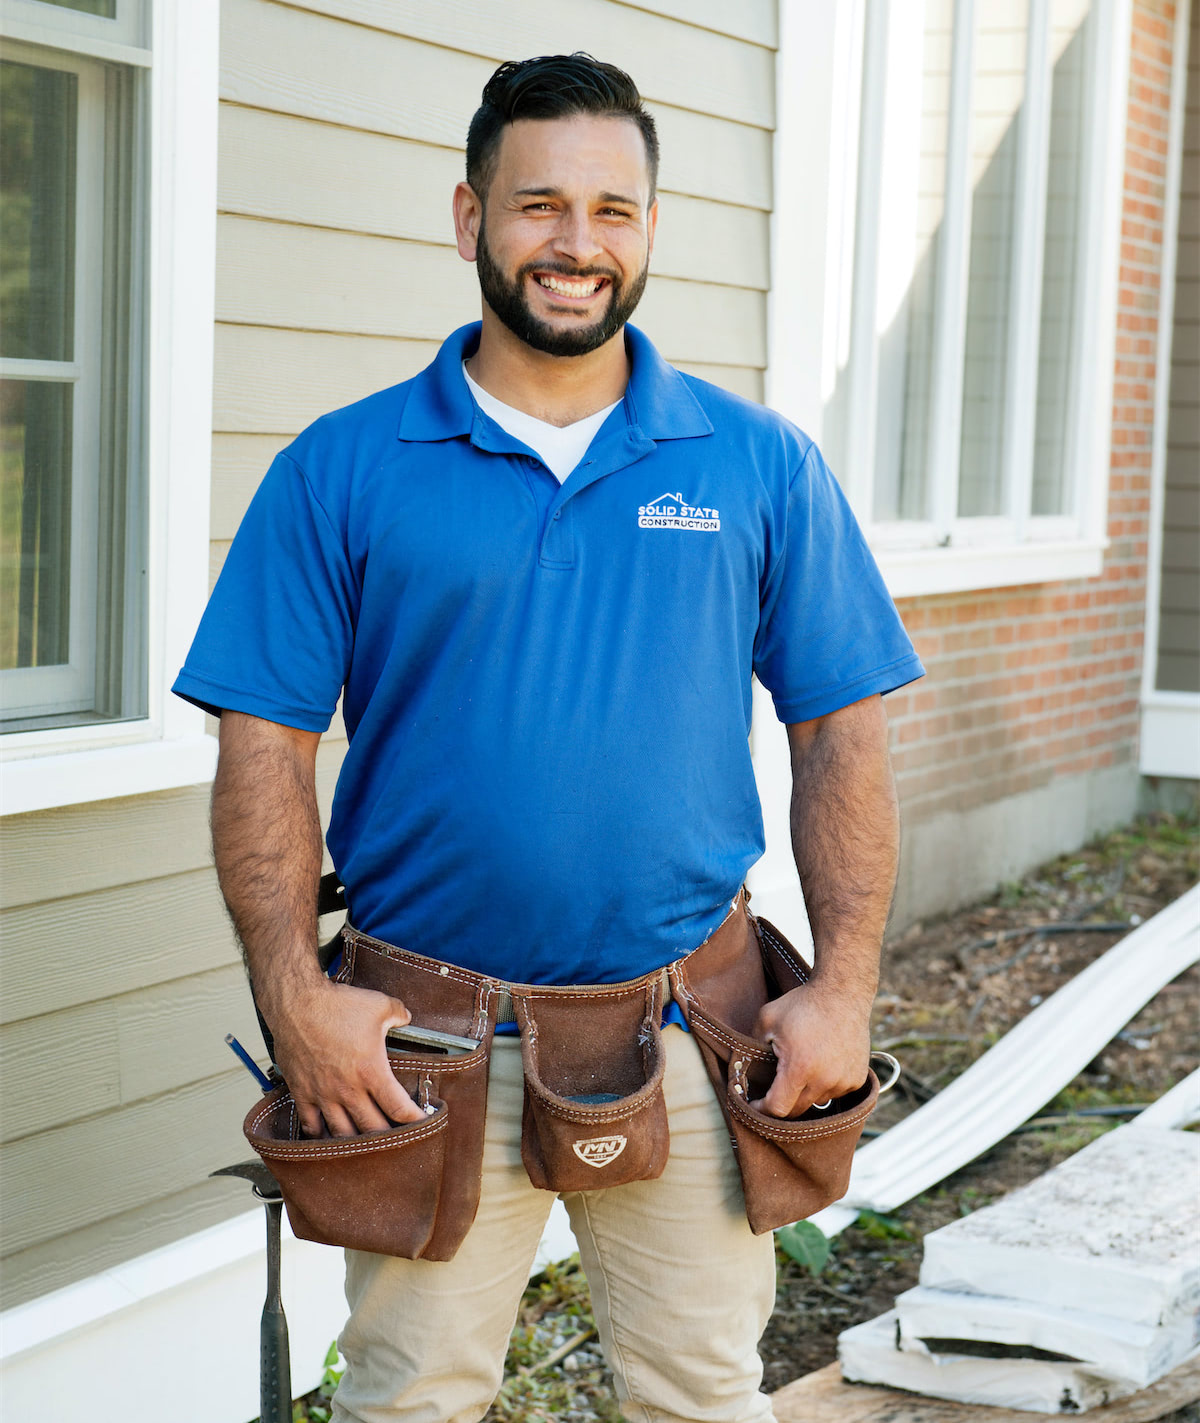 Solid State Construction Of Central MA - Siding Installer - Will